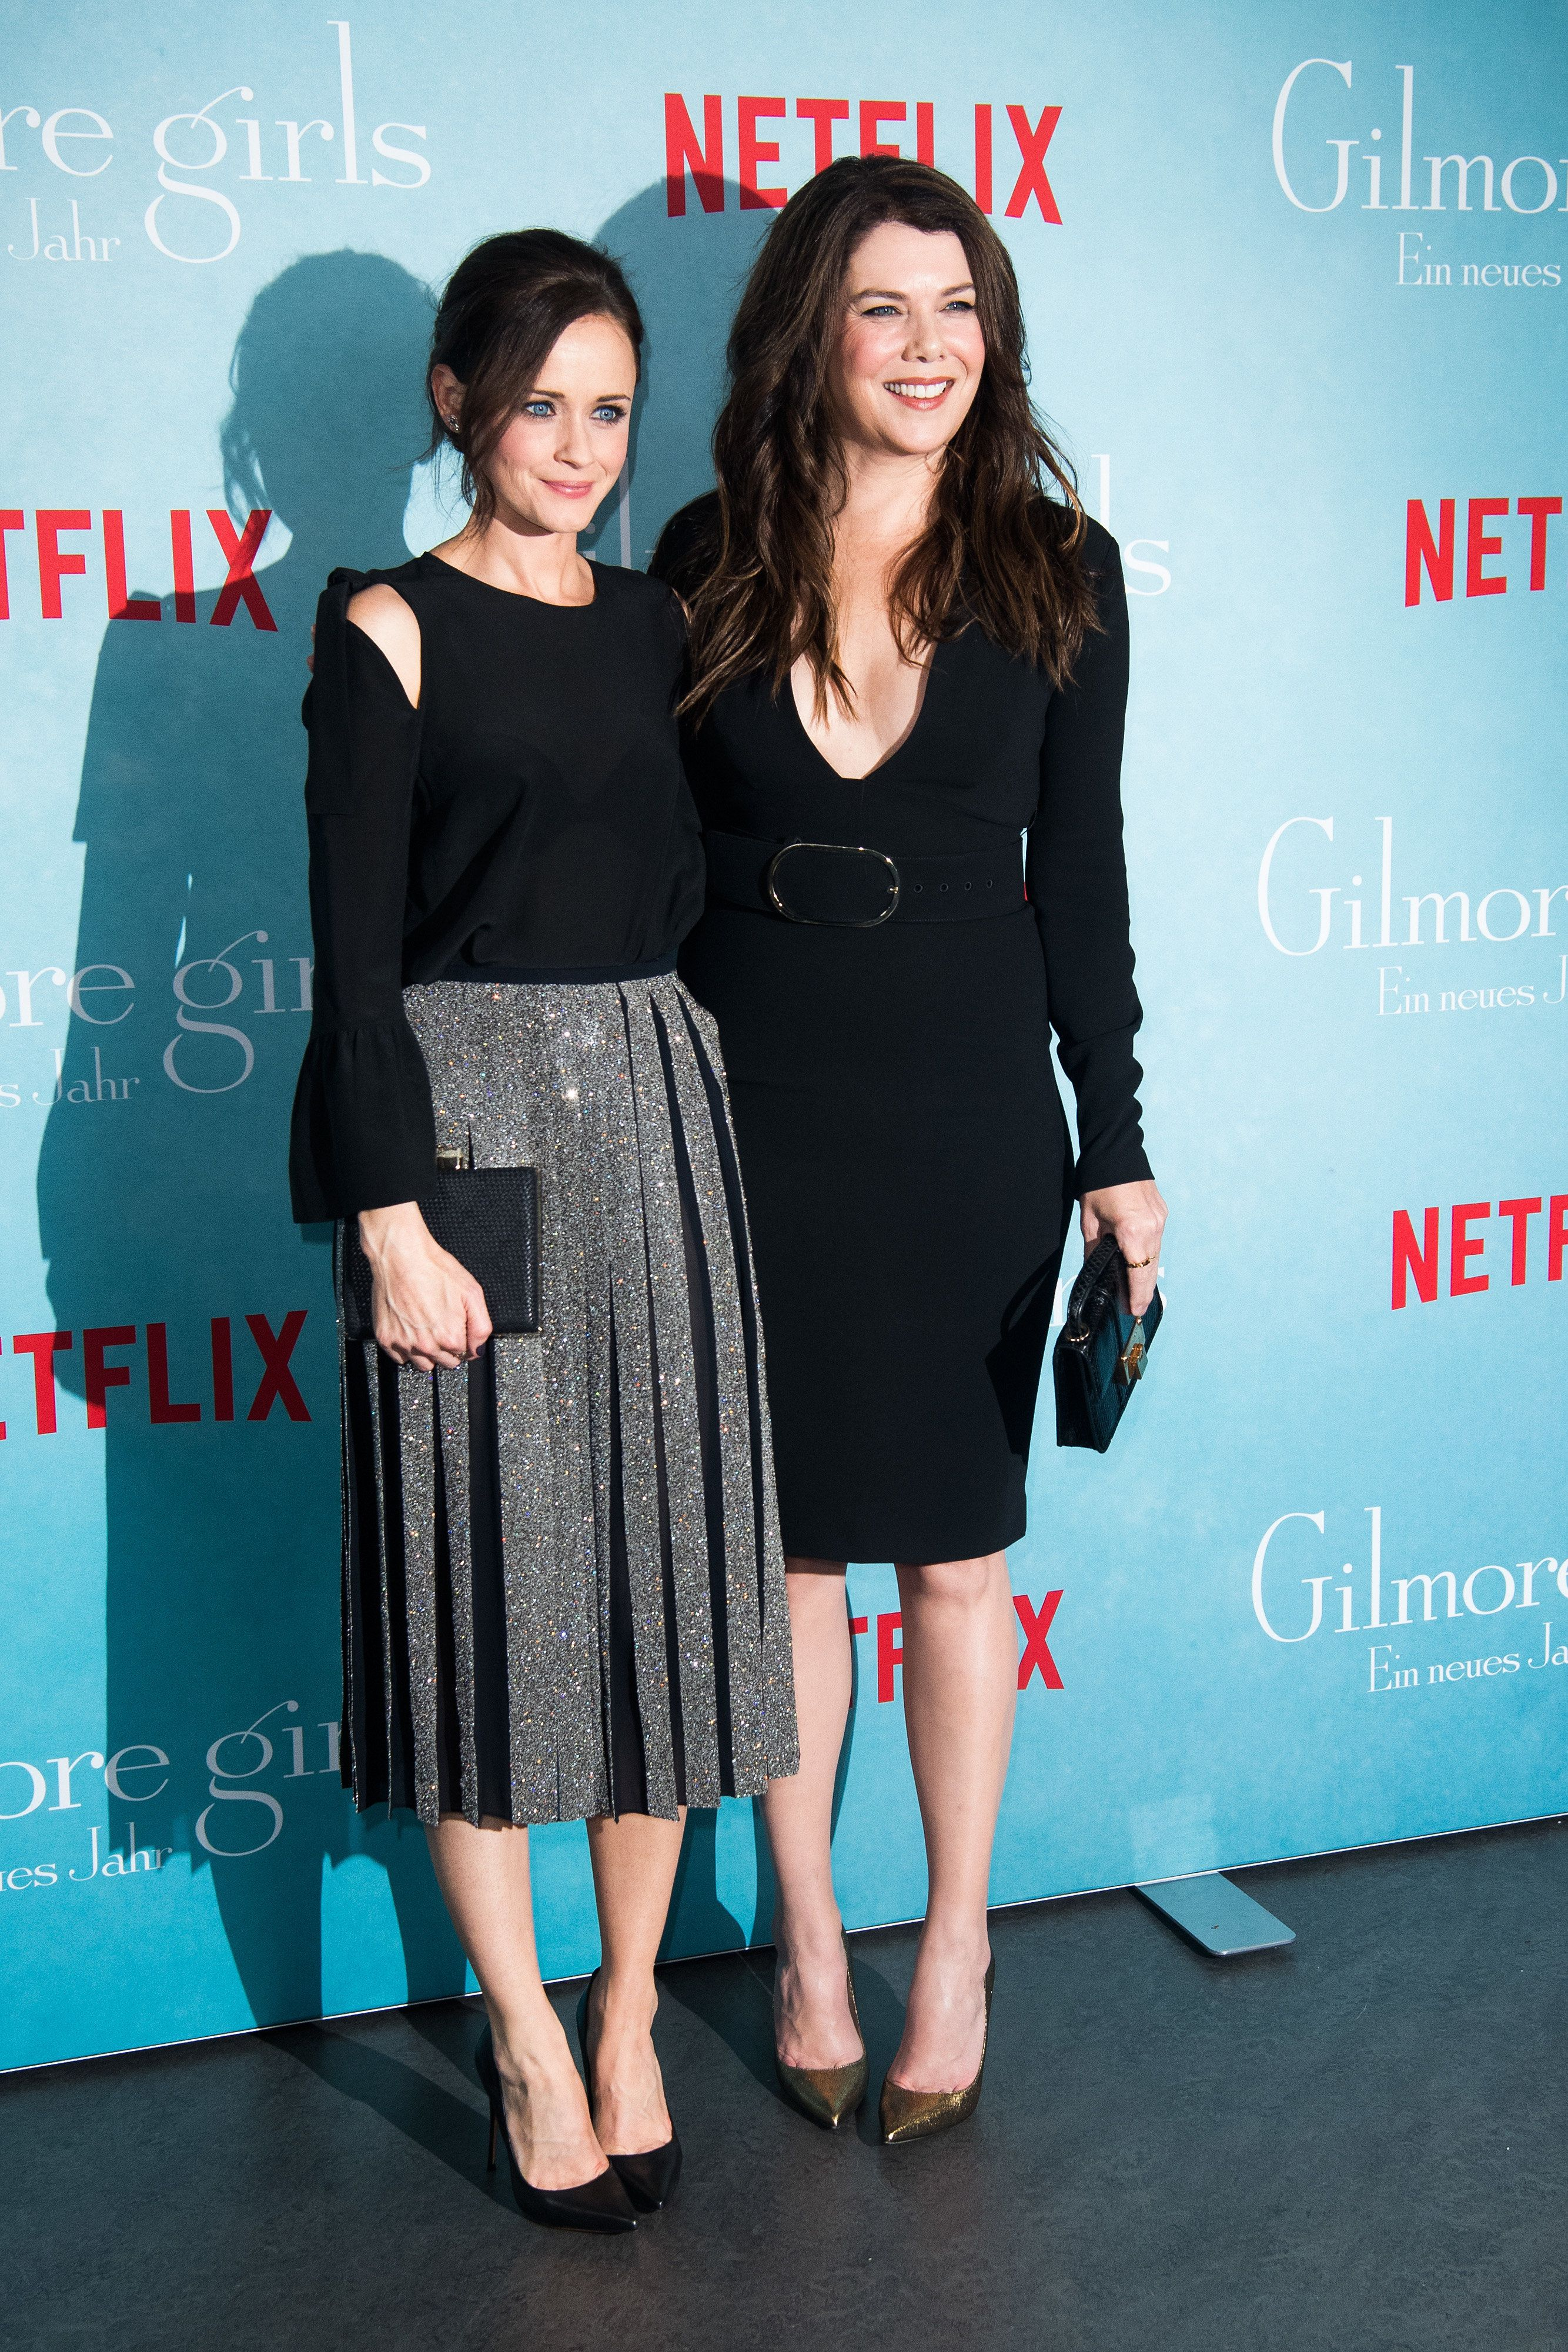 BERLIN, GERMANY - NOVEMBER 10:  Alexis Bledel and Lauren Graham attend the 'Gilmore Girls' fan event at Admiralspalast on November 10, 2016 in Berlin, Germany.  (Photo by Matthias Nareyek/Getty Images)